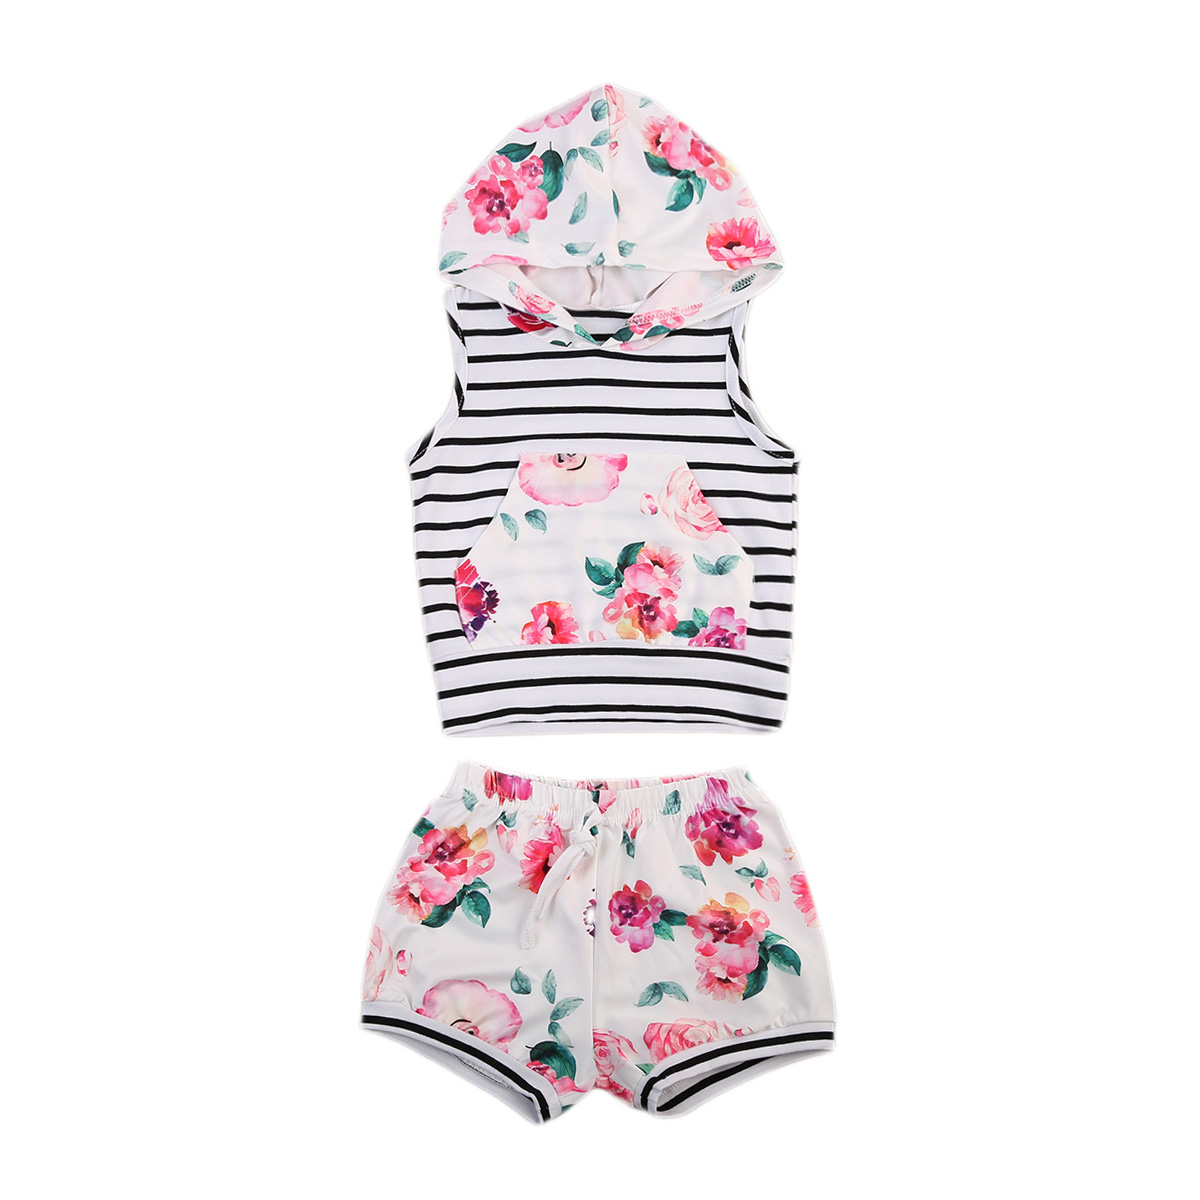 Newborn Baby Girls Clothes Set Cotton Striped Sleeveless Hooded Tops Floral Shorts Pants Outfits Girl Clothing Summer 2Pcs kid newborn summer clothes toddler baby boy girl sleeveless floral cotton romper outfits sunsuit